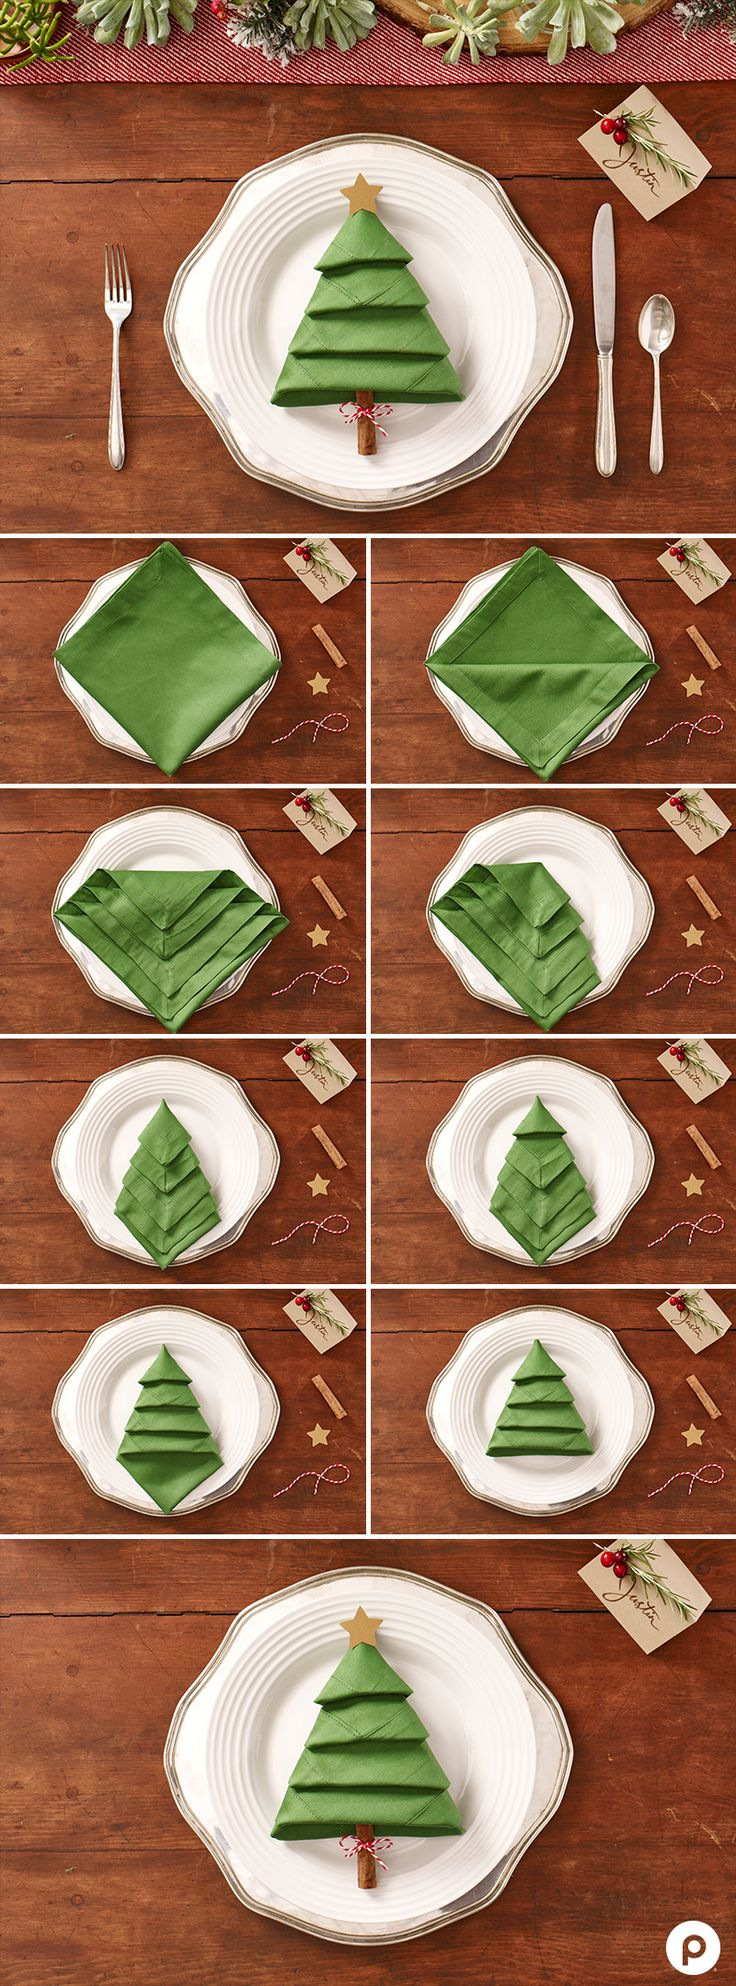 17 best ideas about christmas napkin folding try paper and tie a set of utensils kitvhen twine or raffia and tuck the spoon end into the folded napkin to resemble a trunk christmas tree